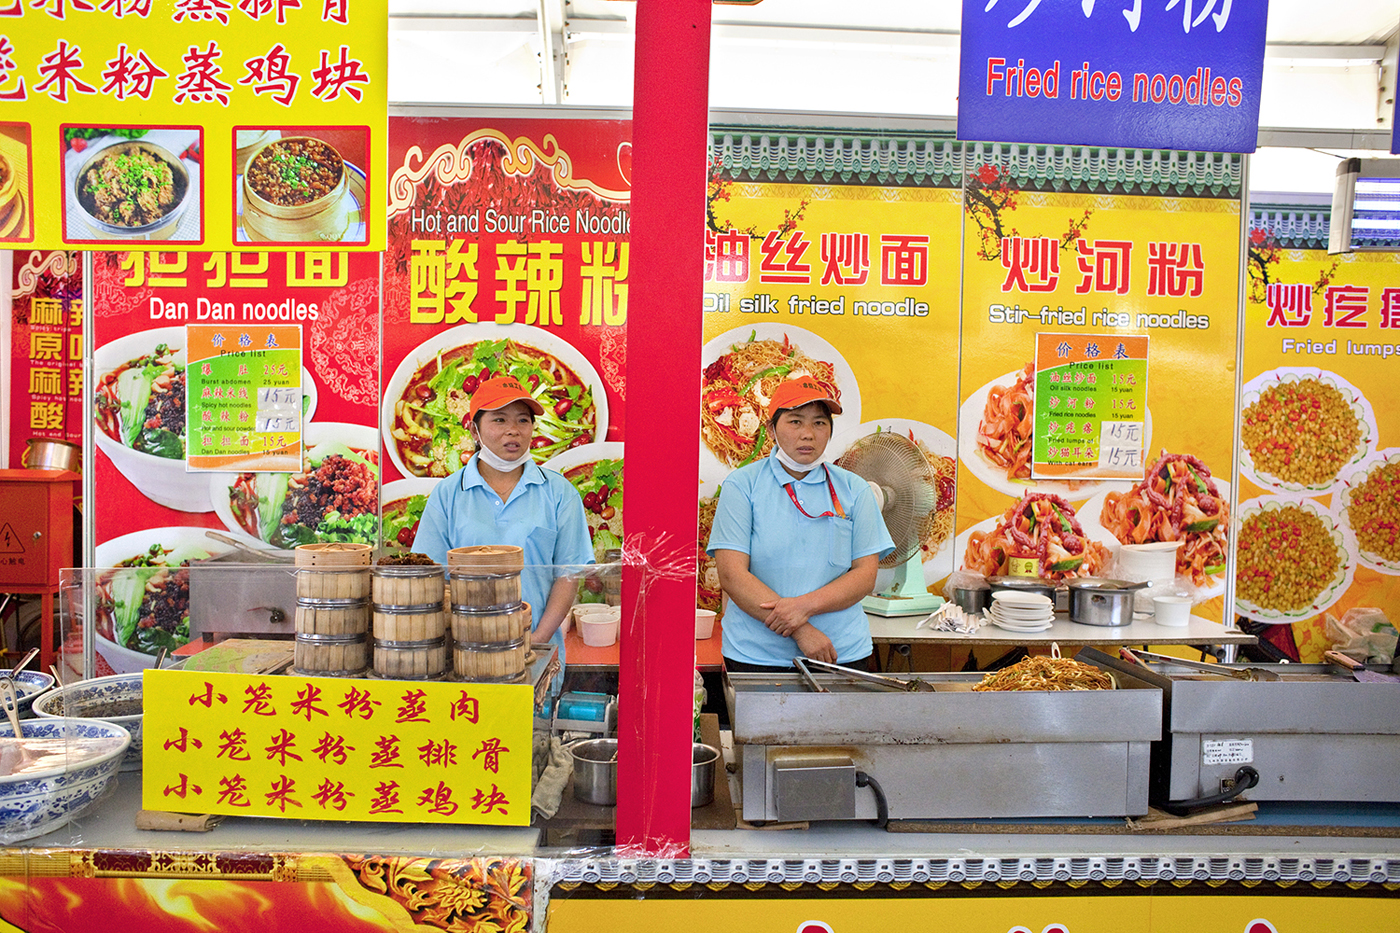 Hitzenberger_Chinese_Fast_Food_07.jpg